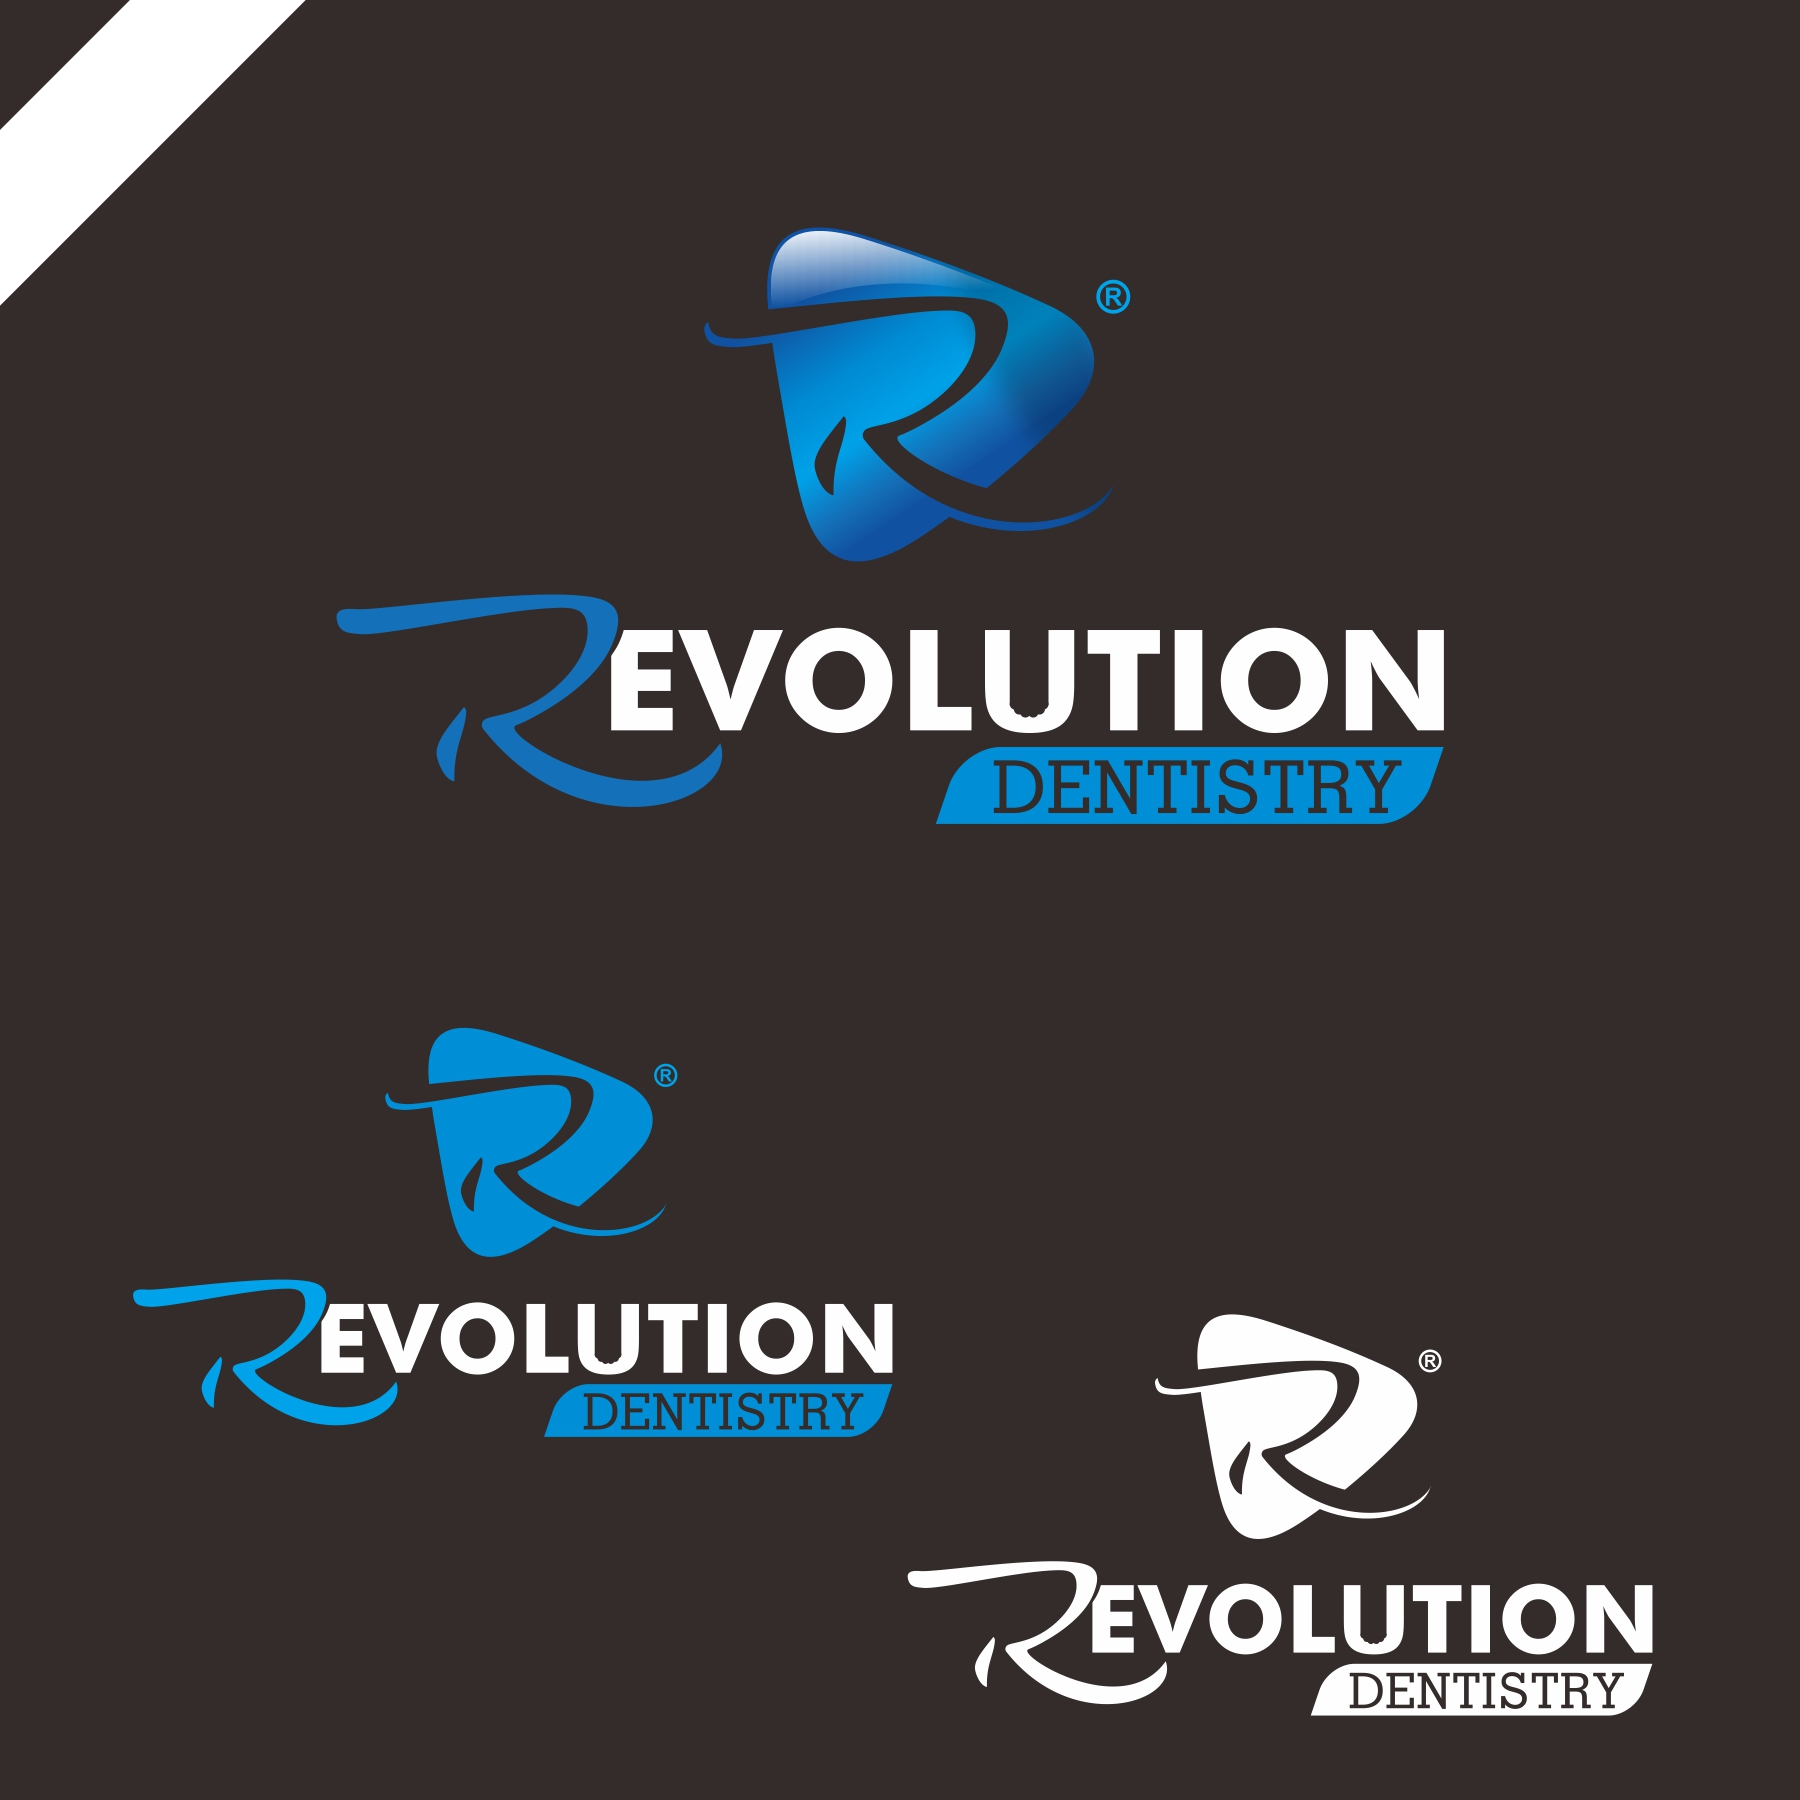 Logo Design by PJD - Entry No. 179 in the Logo Design Contest Artistic Logo Design for Revolution Dentistry.